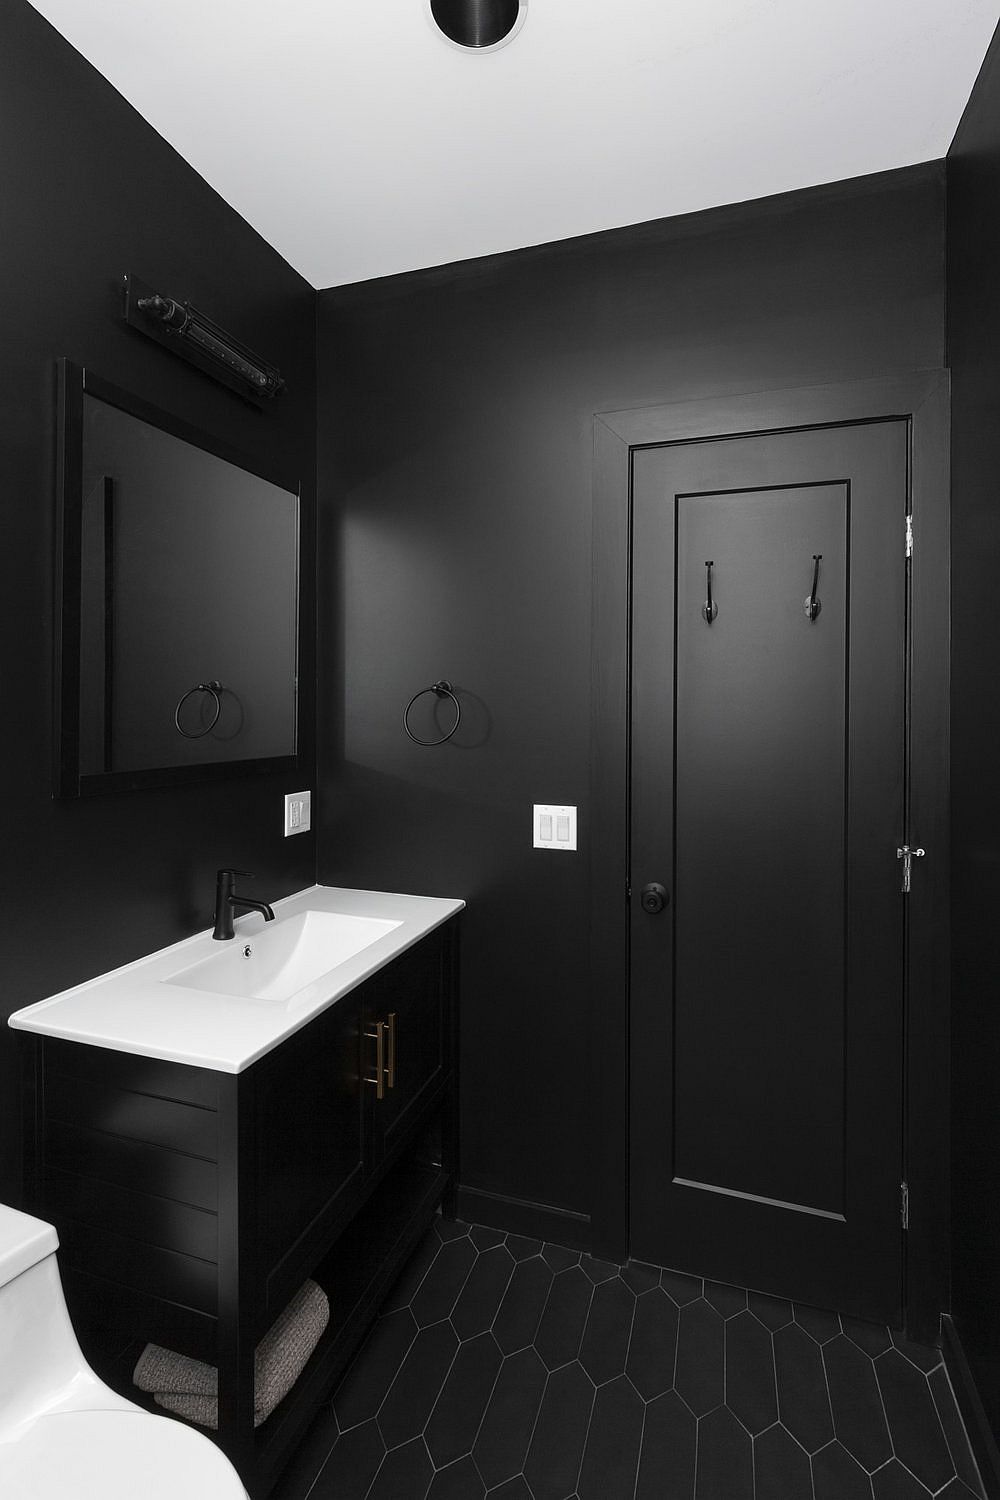 Polished-contemporary-bathroom-in-black-with-black-tiled-floor-and-white-ceiling-15118